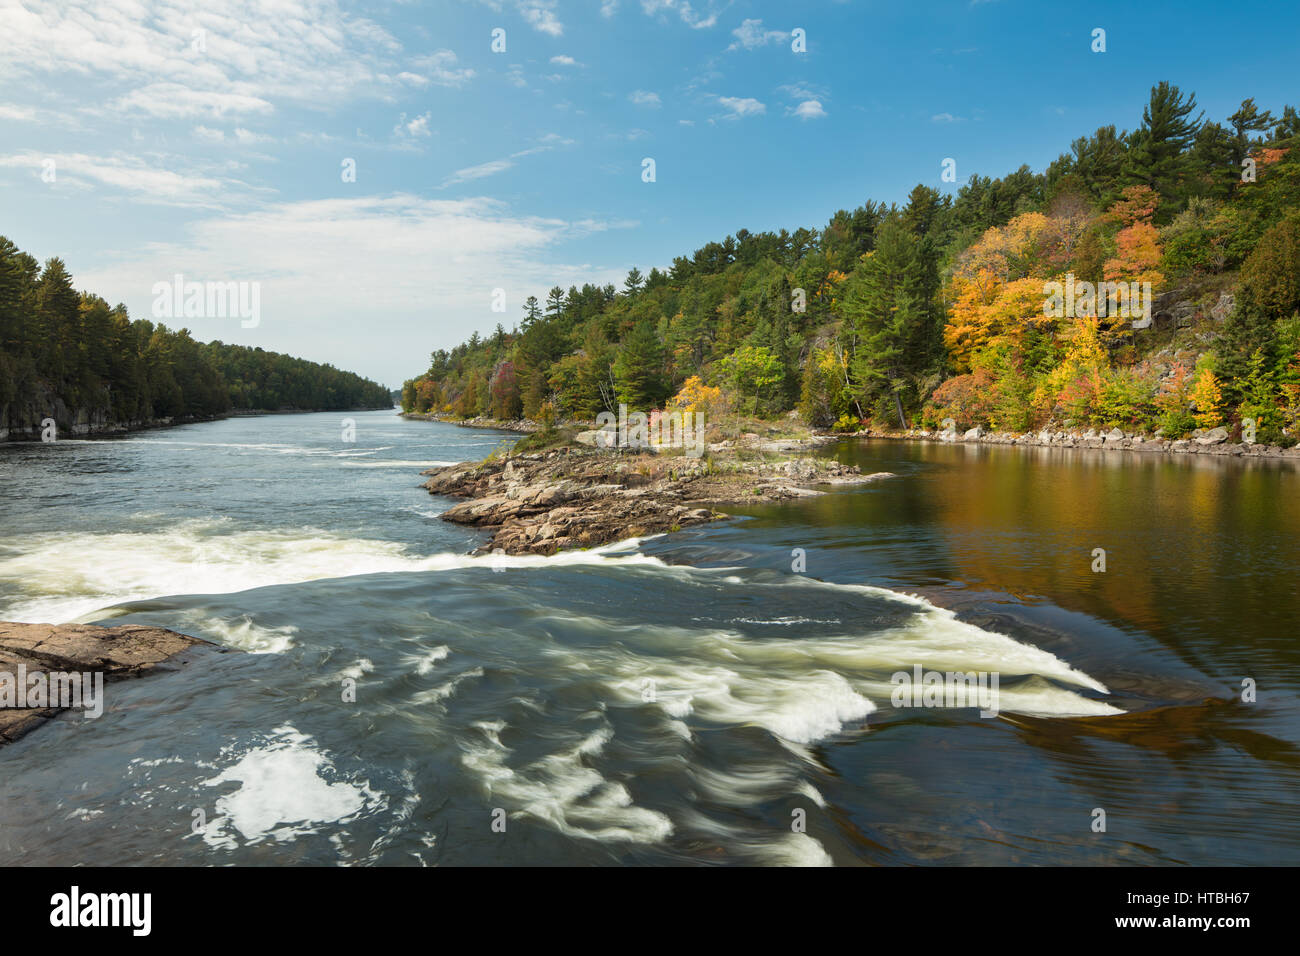 Recollet Falls, French River, Ontario, Canada - Stock Image